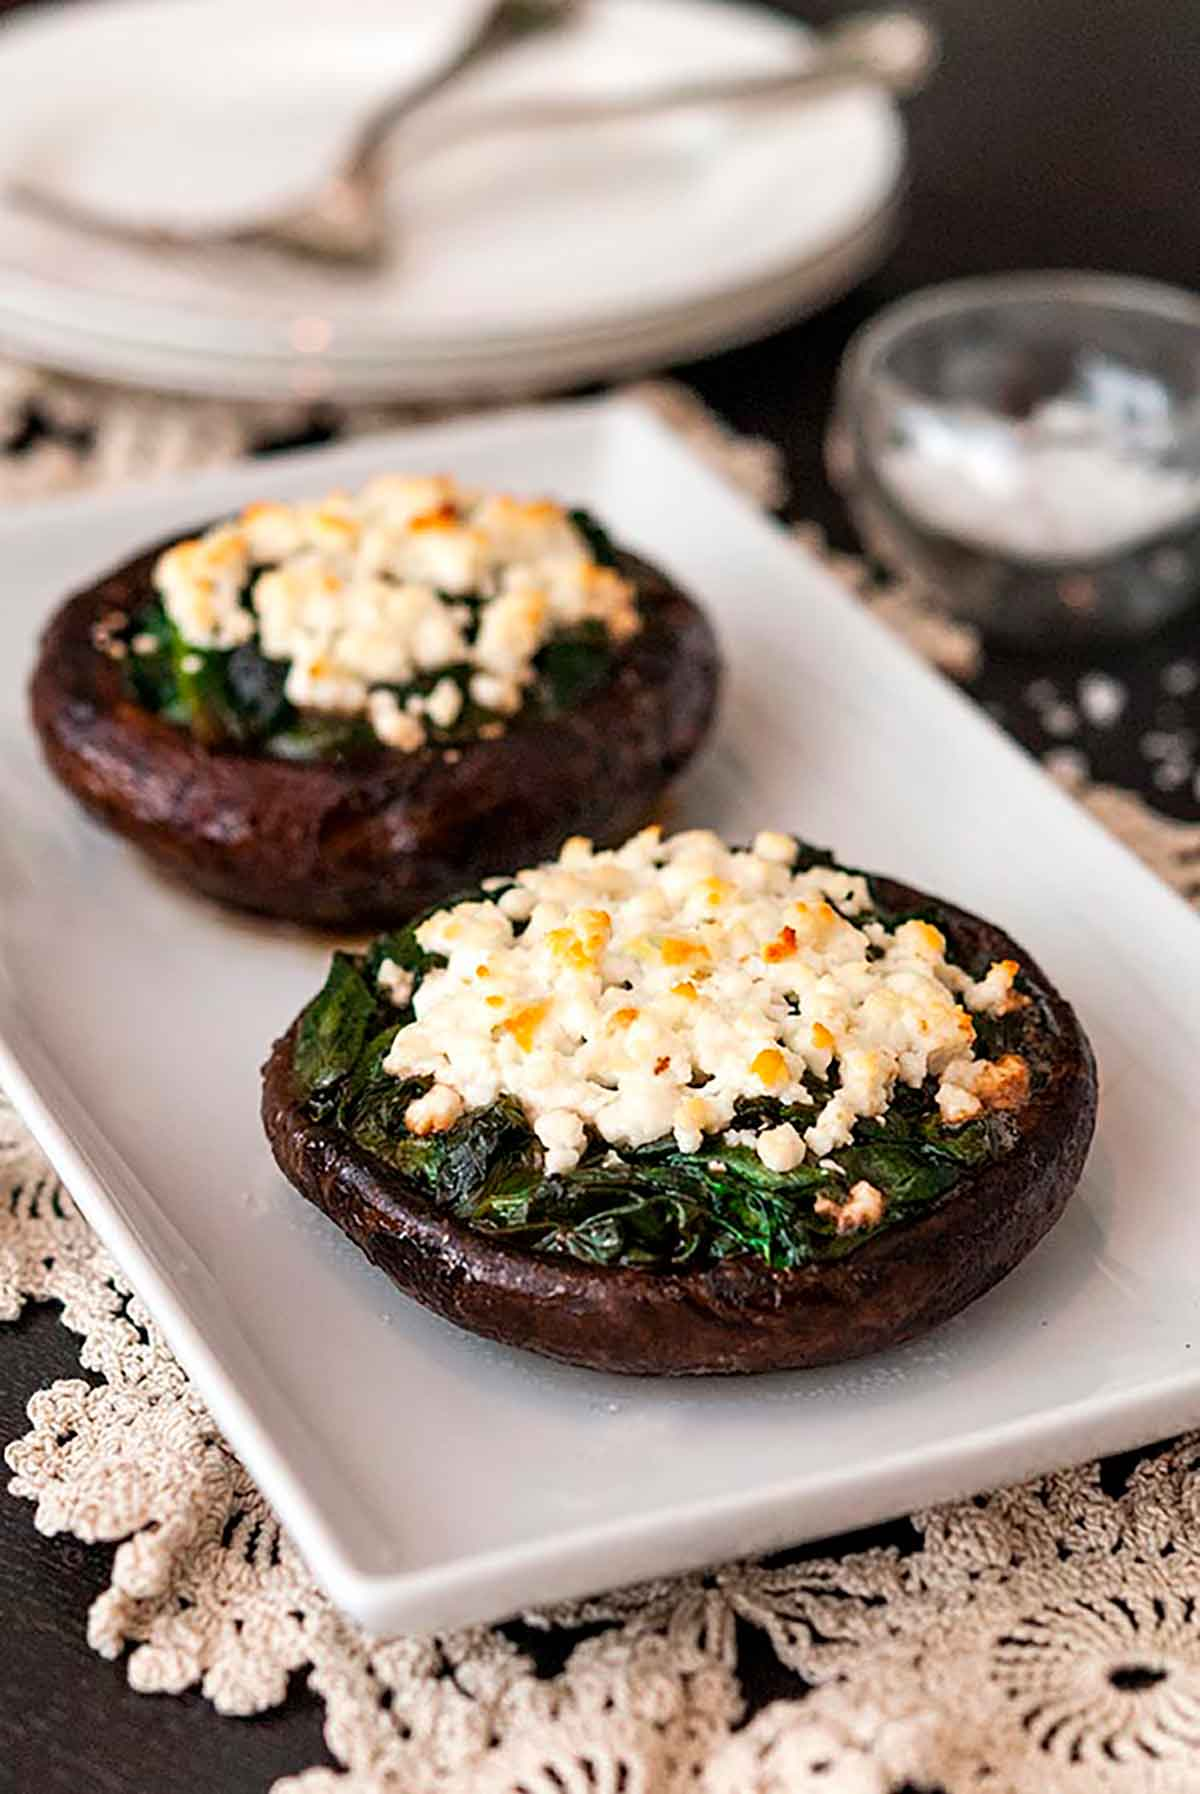 2 spinach and feta-stuffed mushroom caps on a plate on a table, lined with lace with 2 stacked plates in the background.